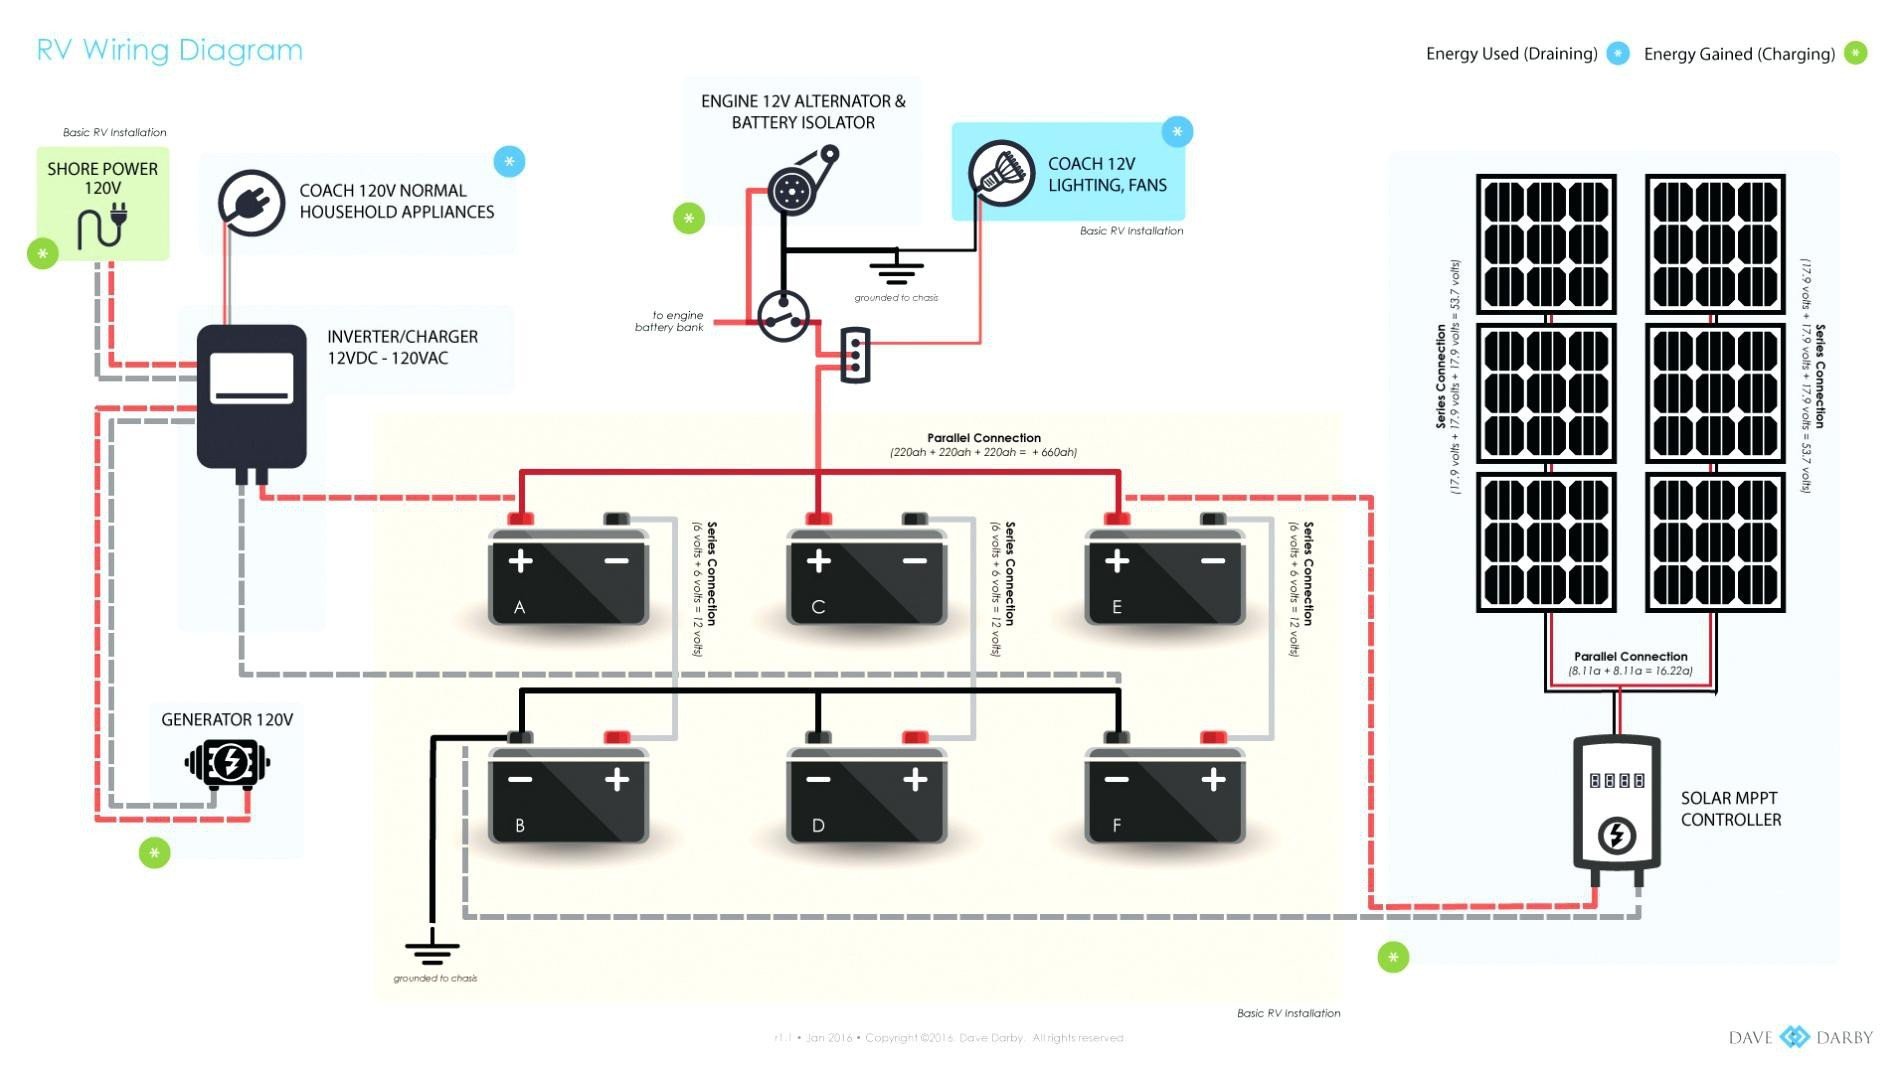 rv solar panel installation wiring diagram Download-Wiring Diagram Od Rv Park Rv Related Post 18-q